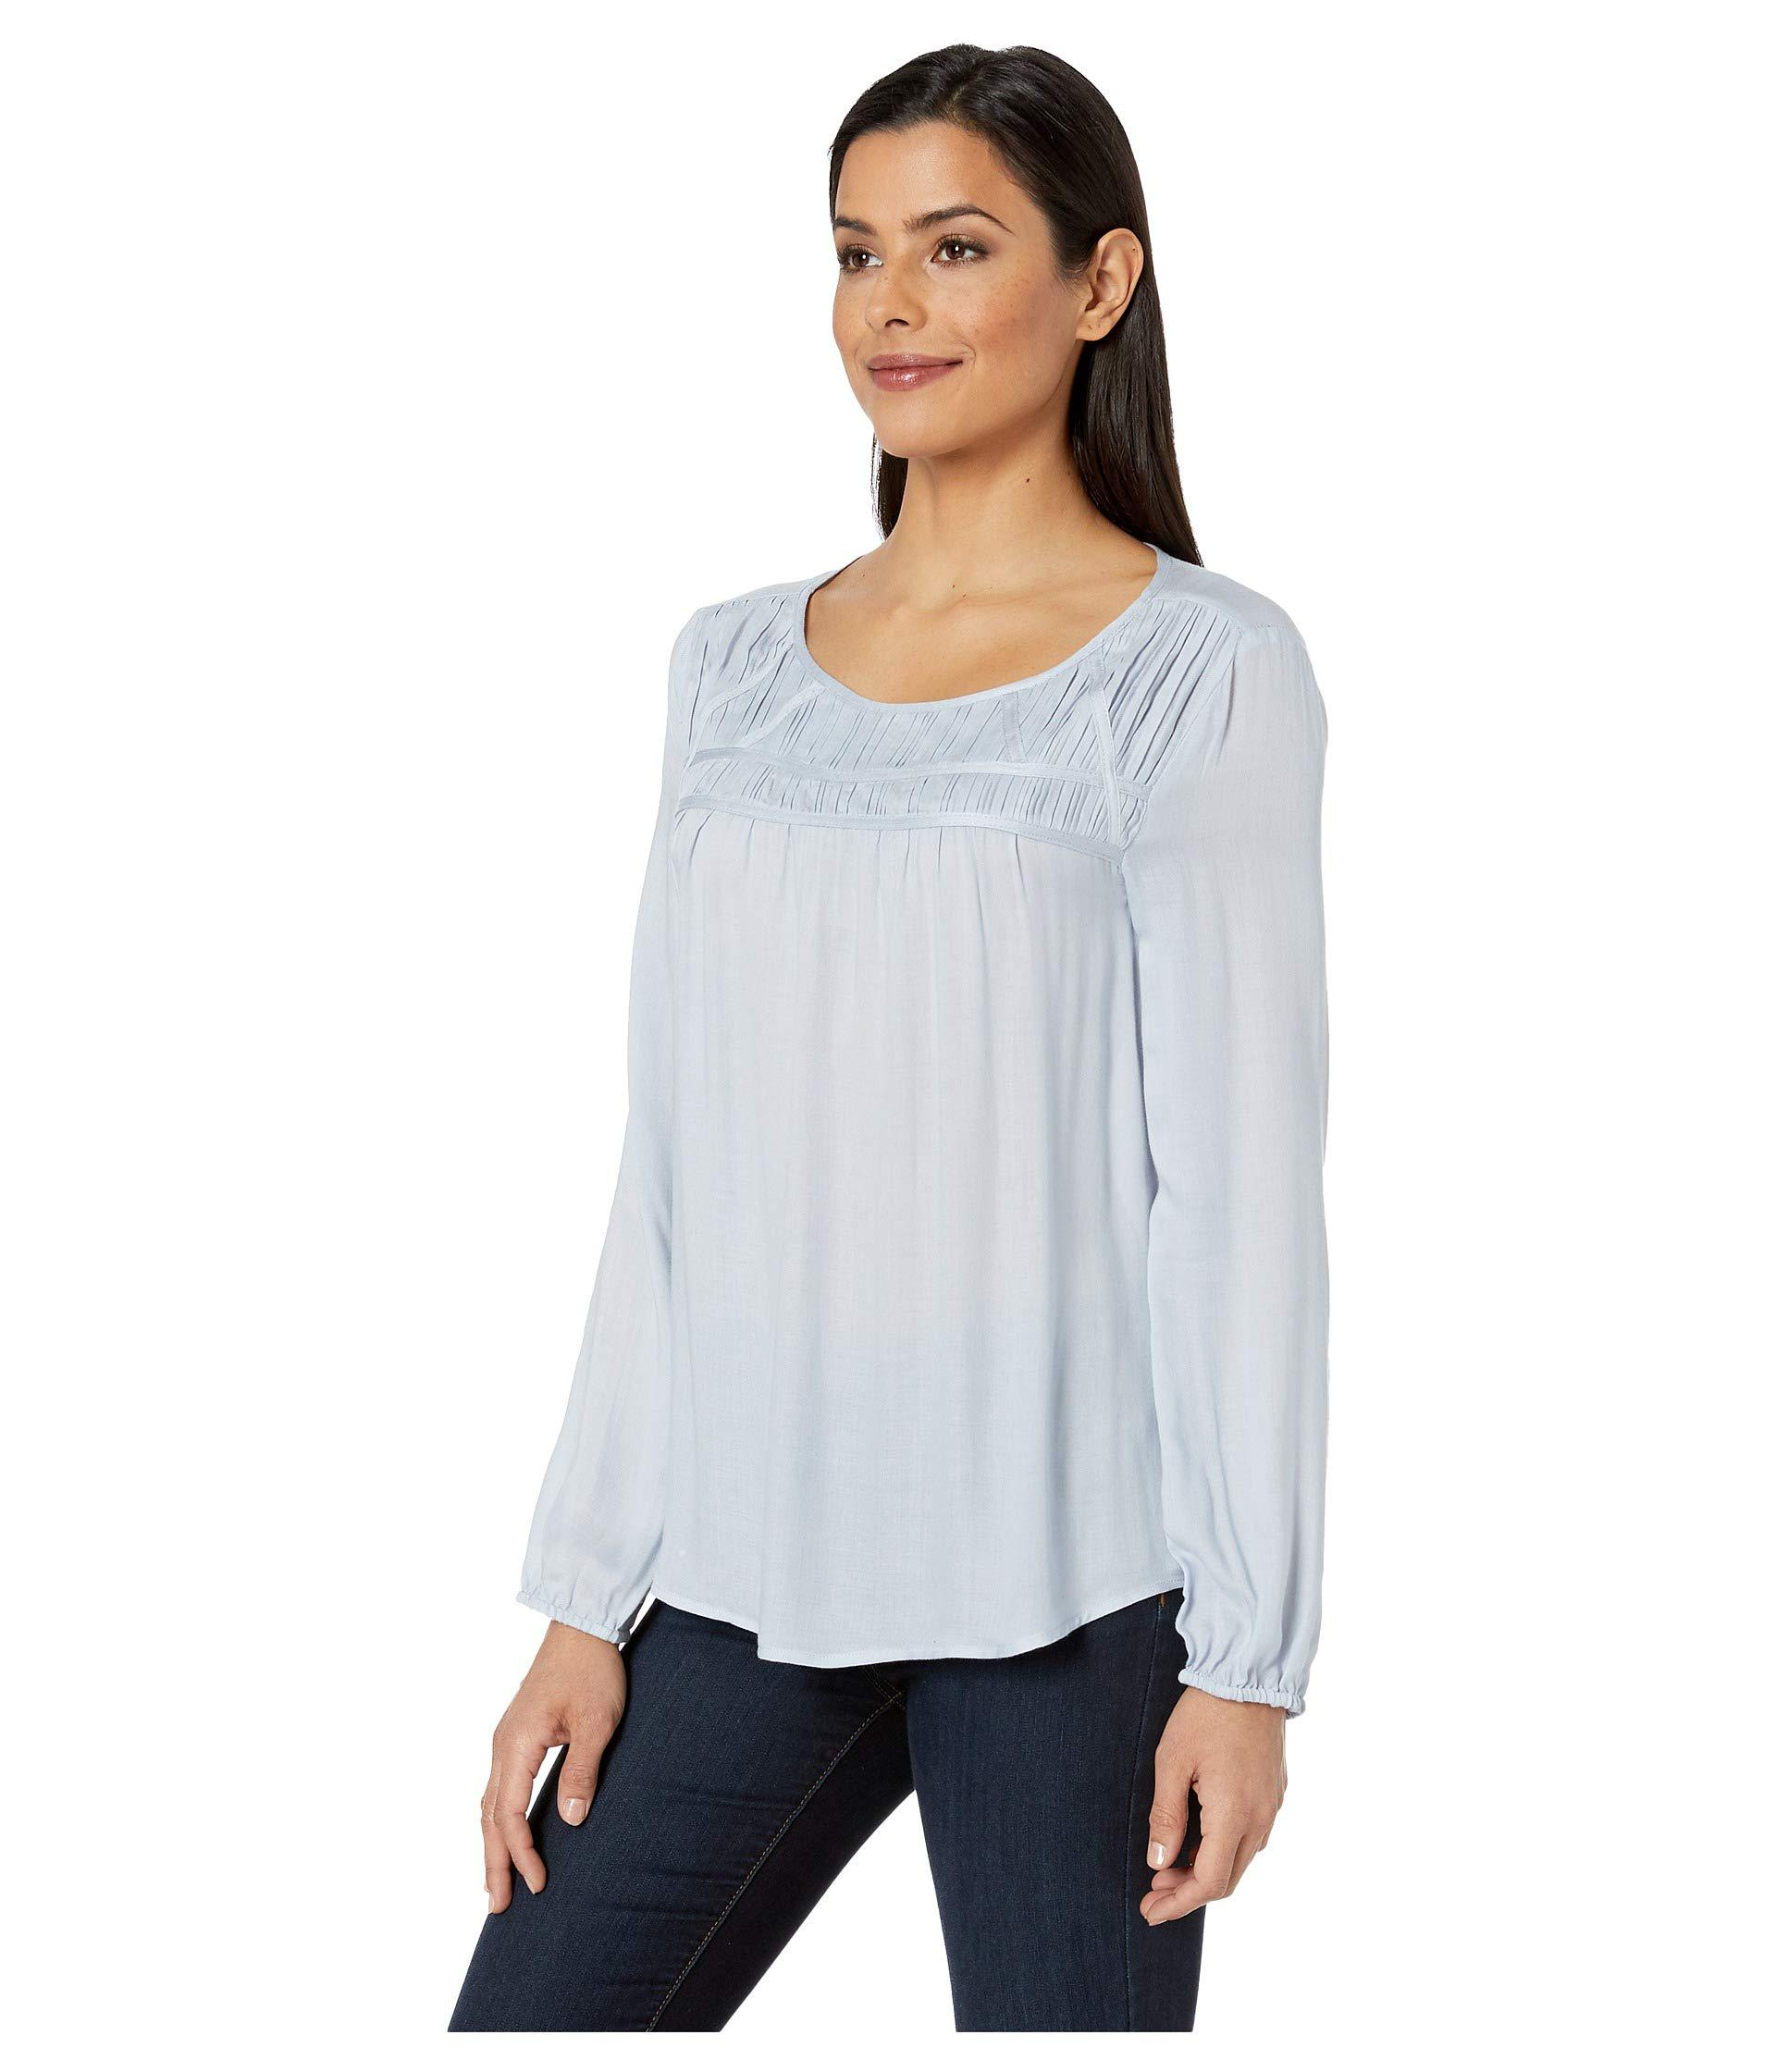 d9cadbeffc Two By Vince Camuto Long Sleeve Ruched Smock Yoke Rayon Twill Blouse  (northern Lights) Women s Blouse in Blue - Lyst